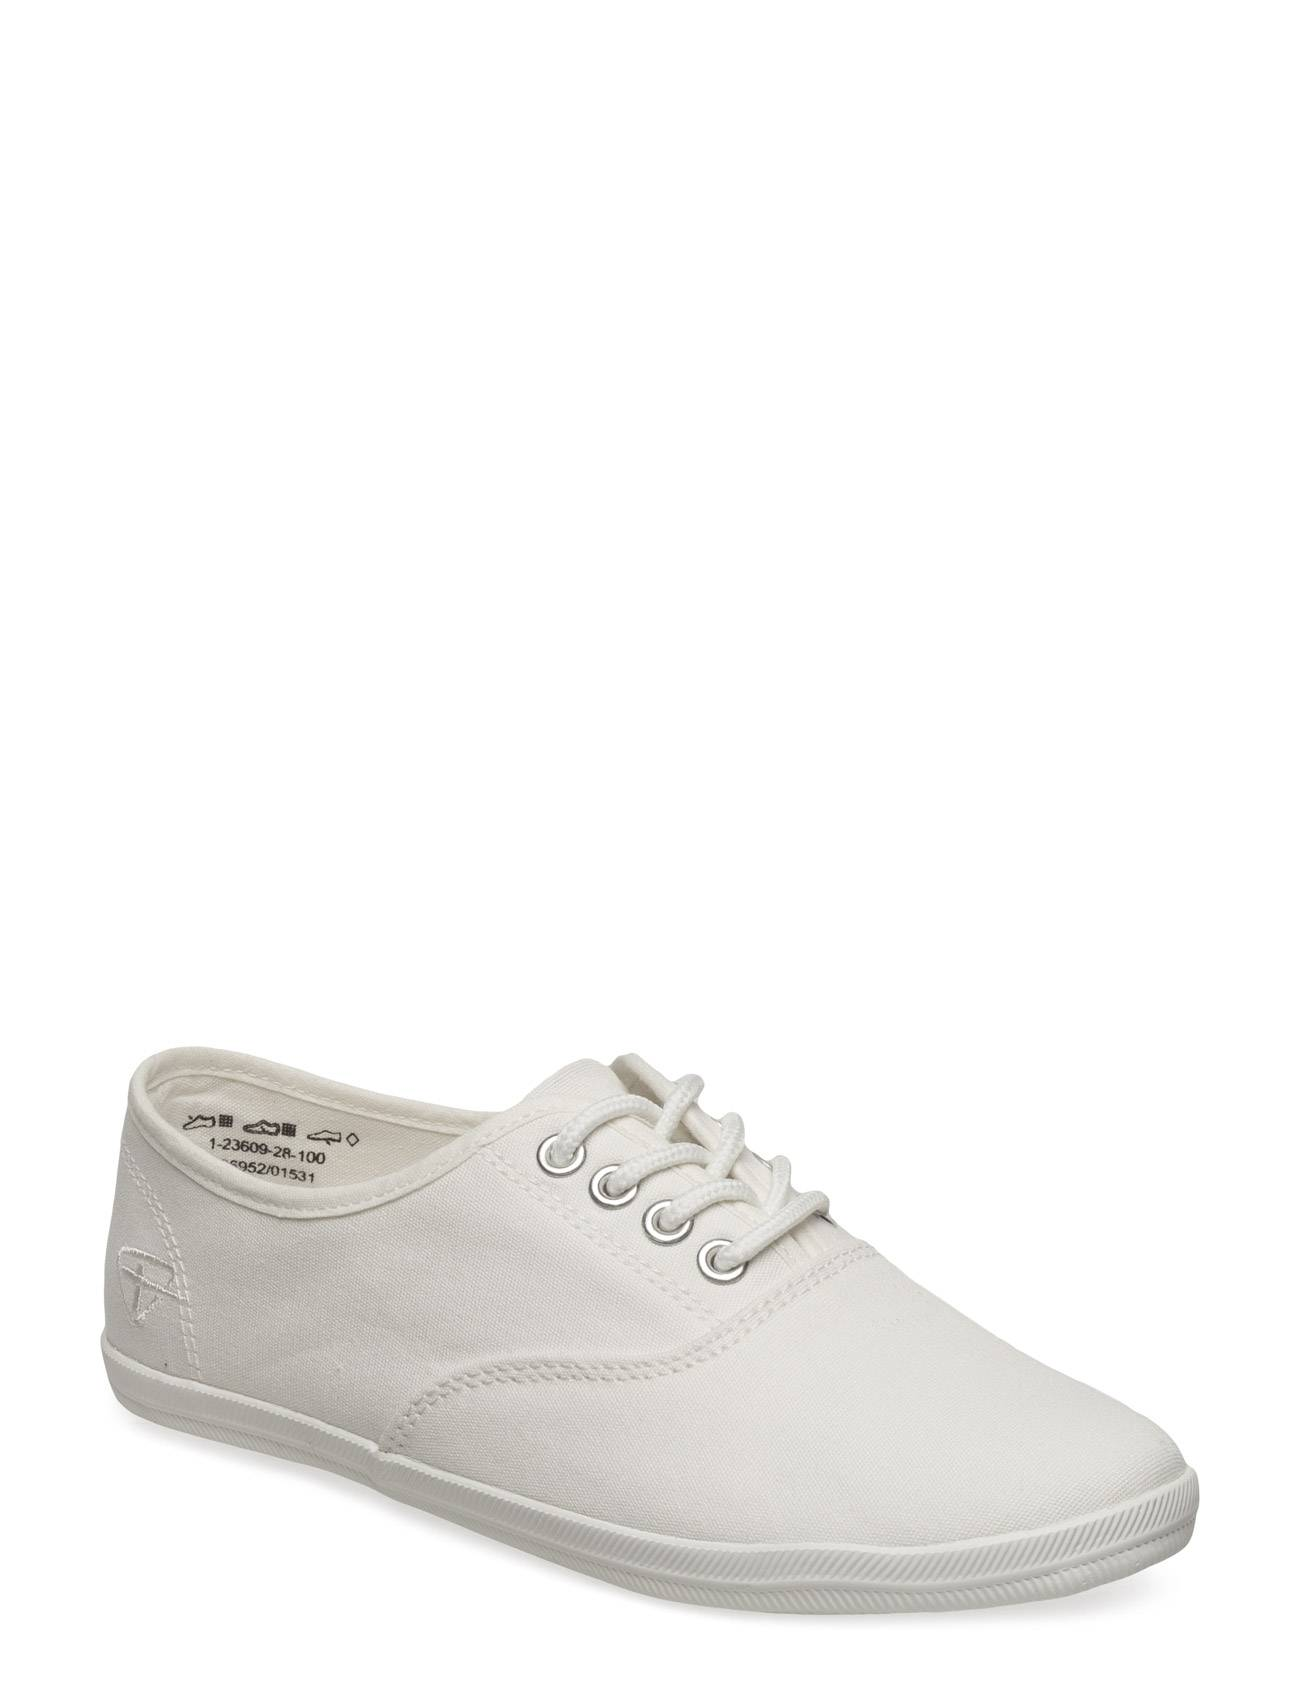 Tamaris Woms Lace-Up - Stein